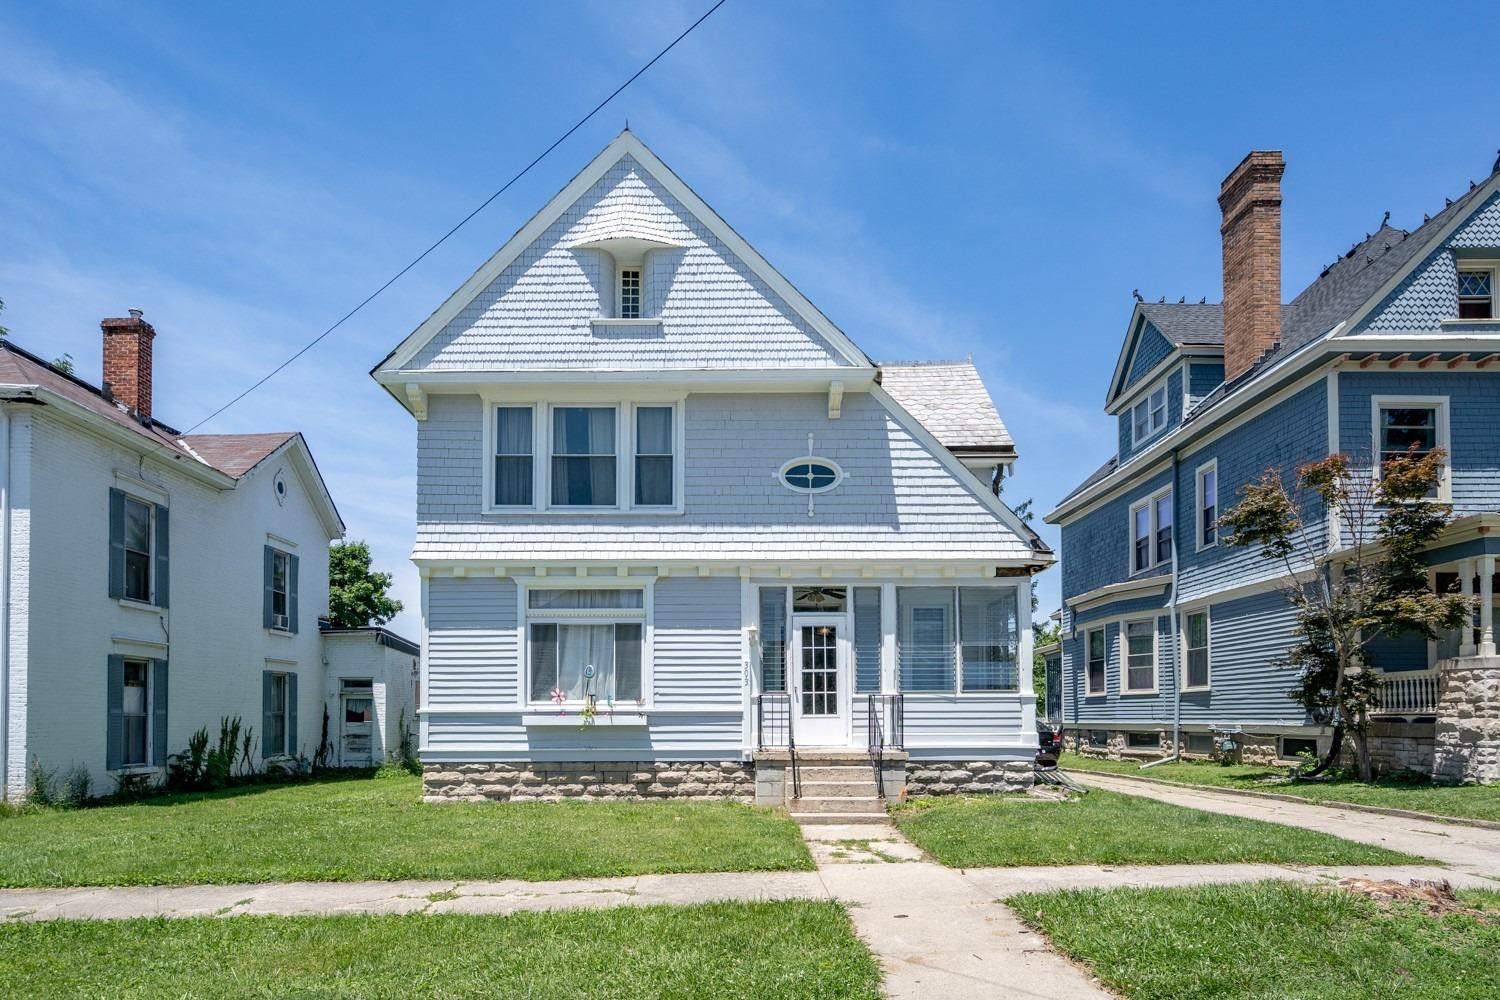 303 E Main St Blanchester, OH